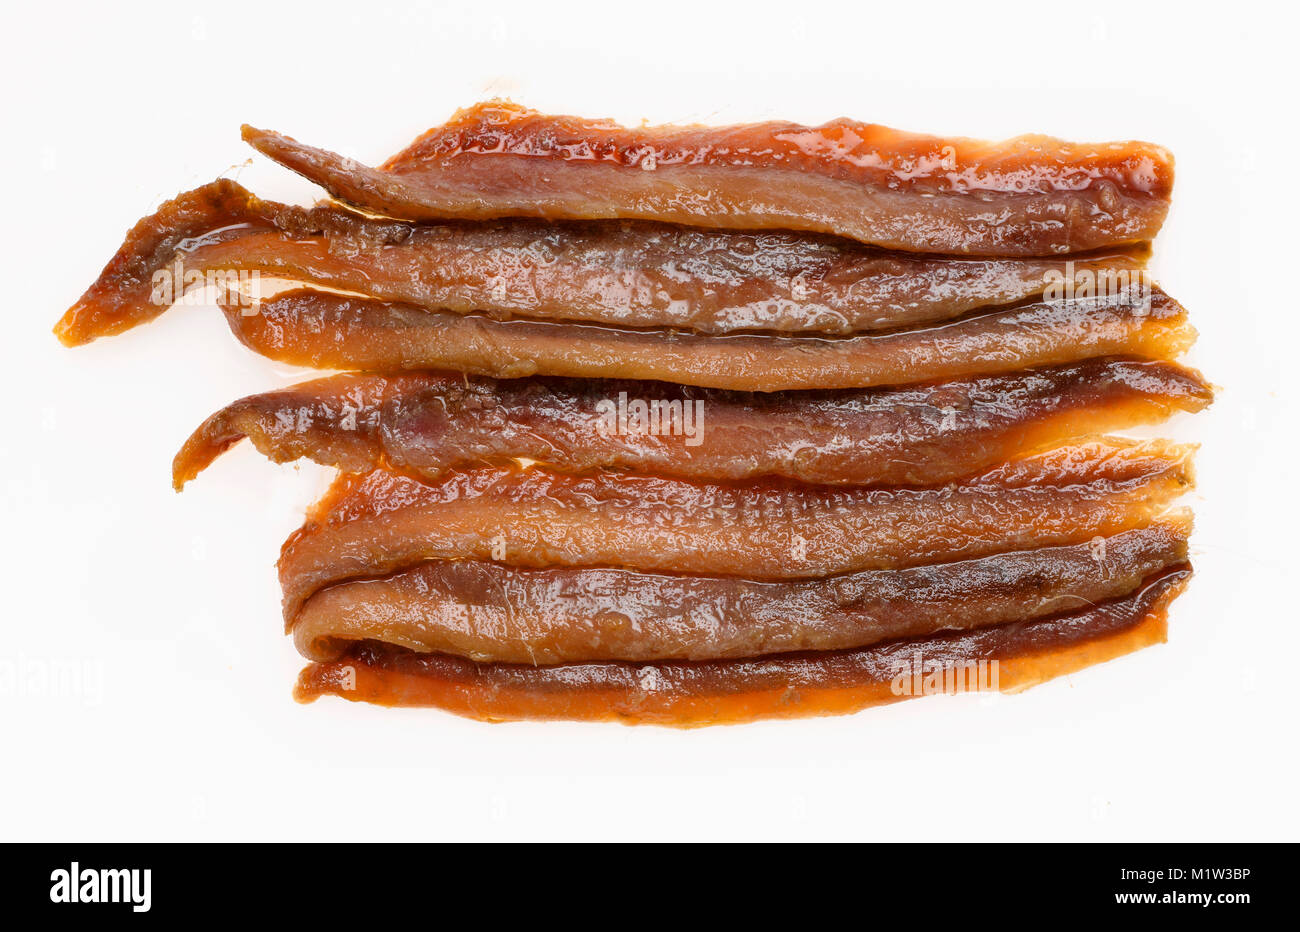 High Angle View of Anchovy Fillets against White Background - Stock Image